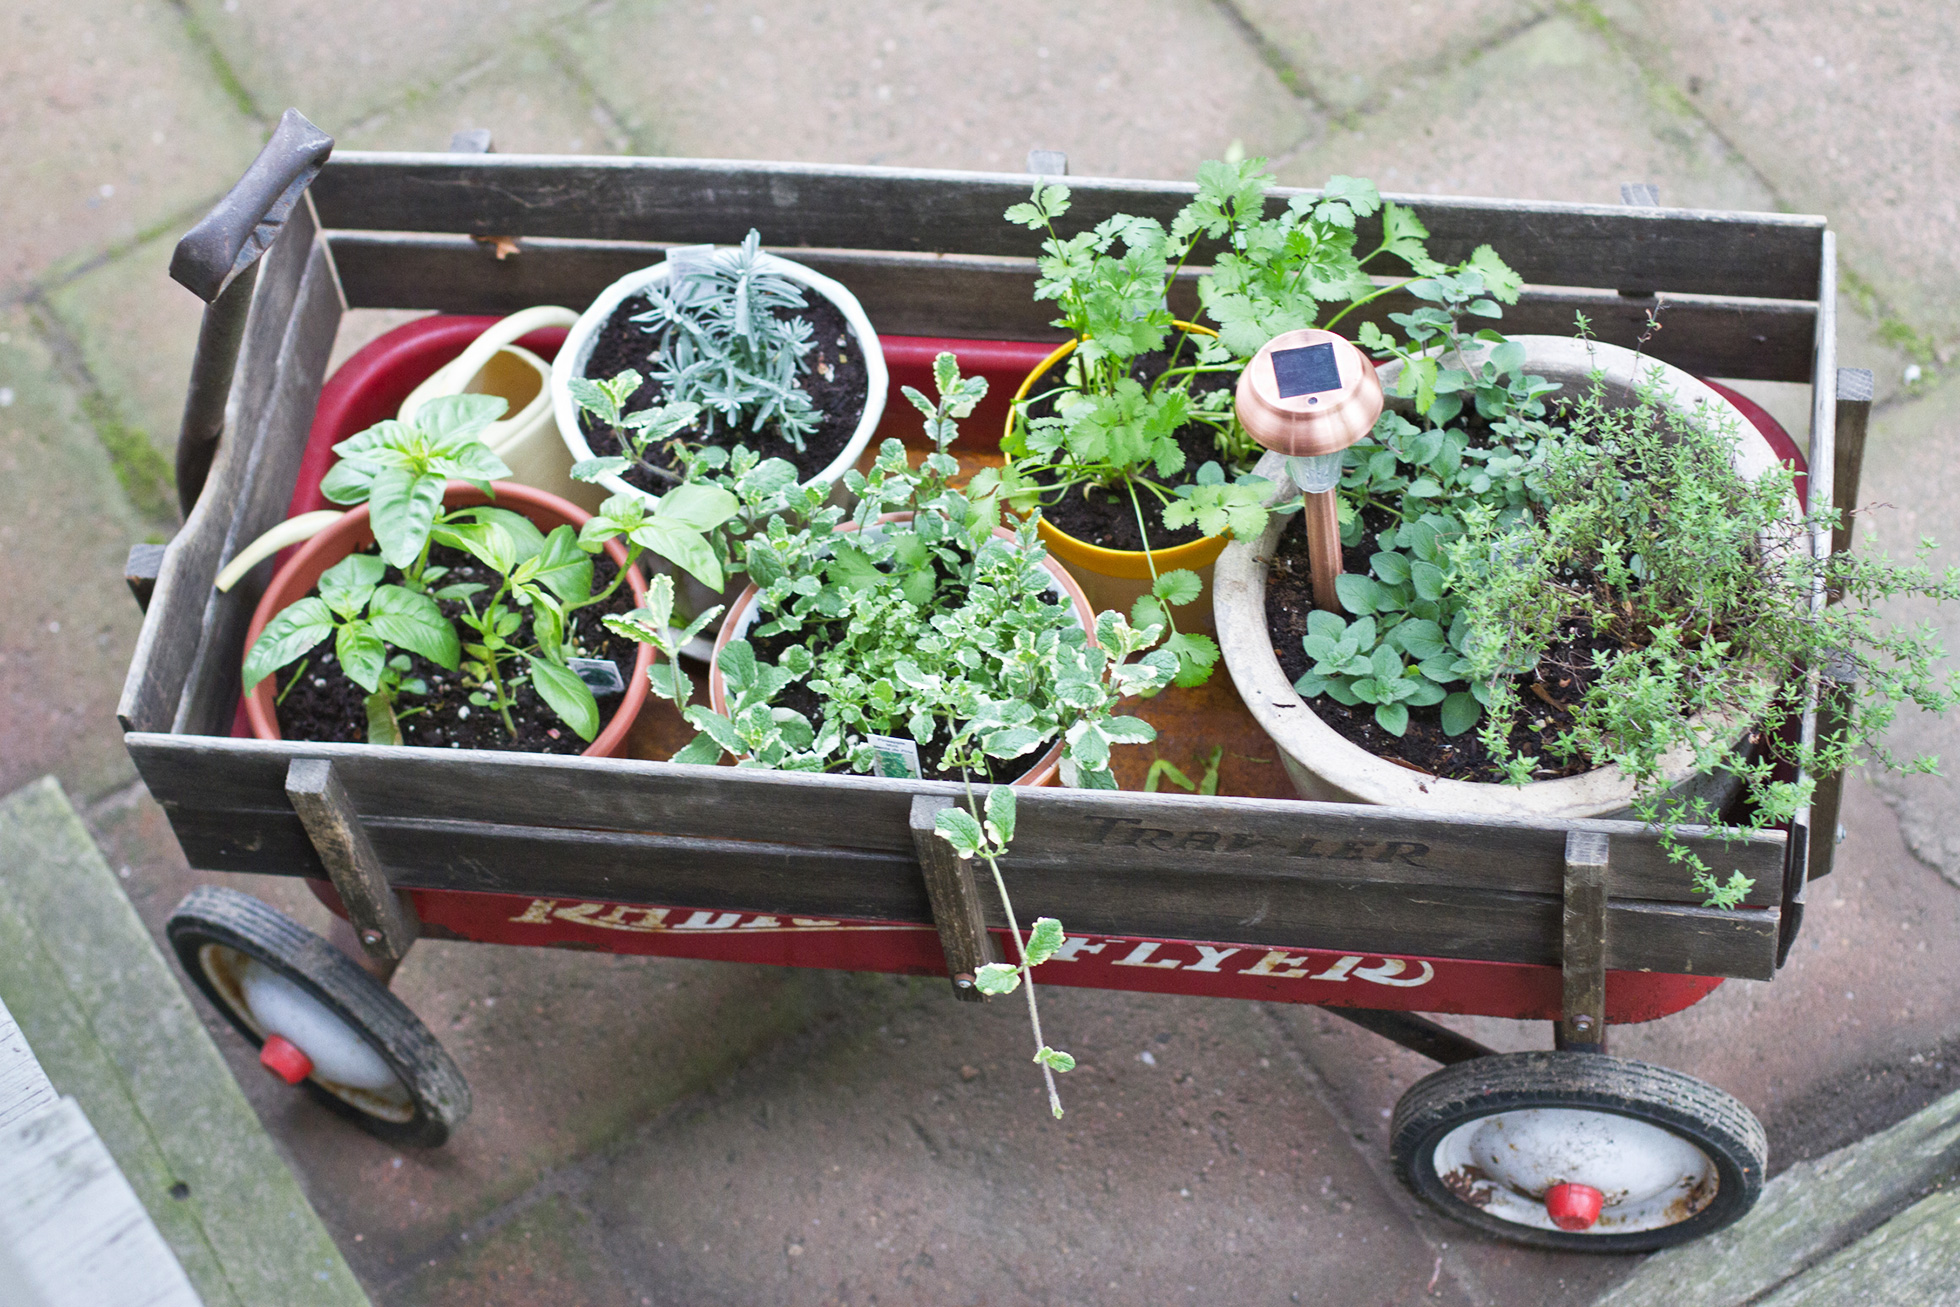 A red wagon filled with herbs